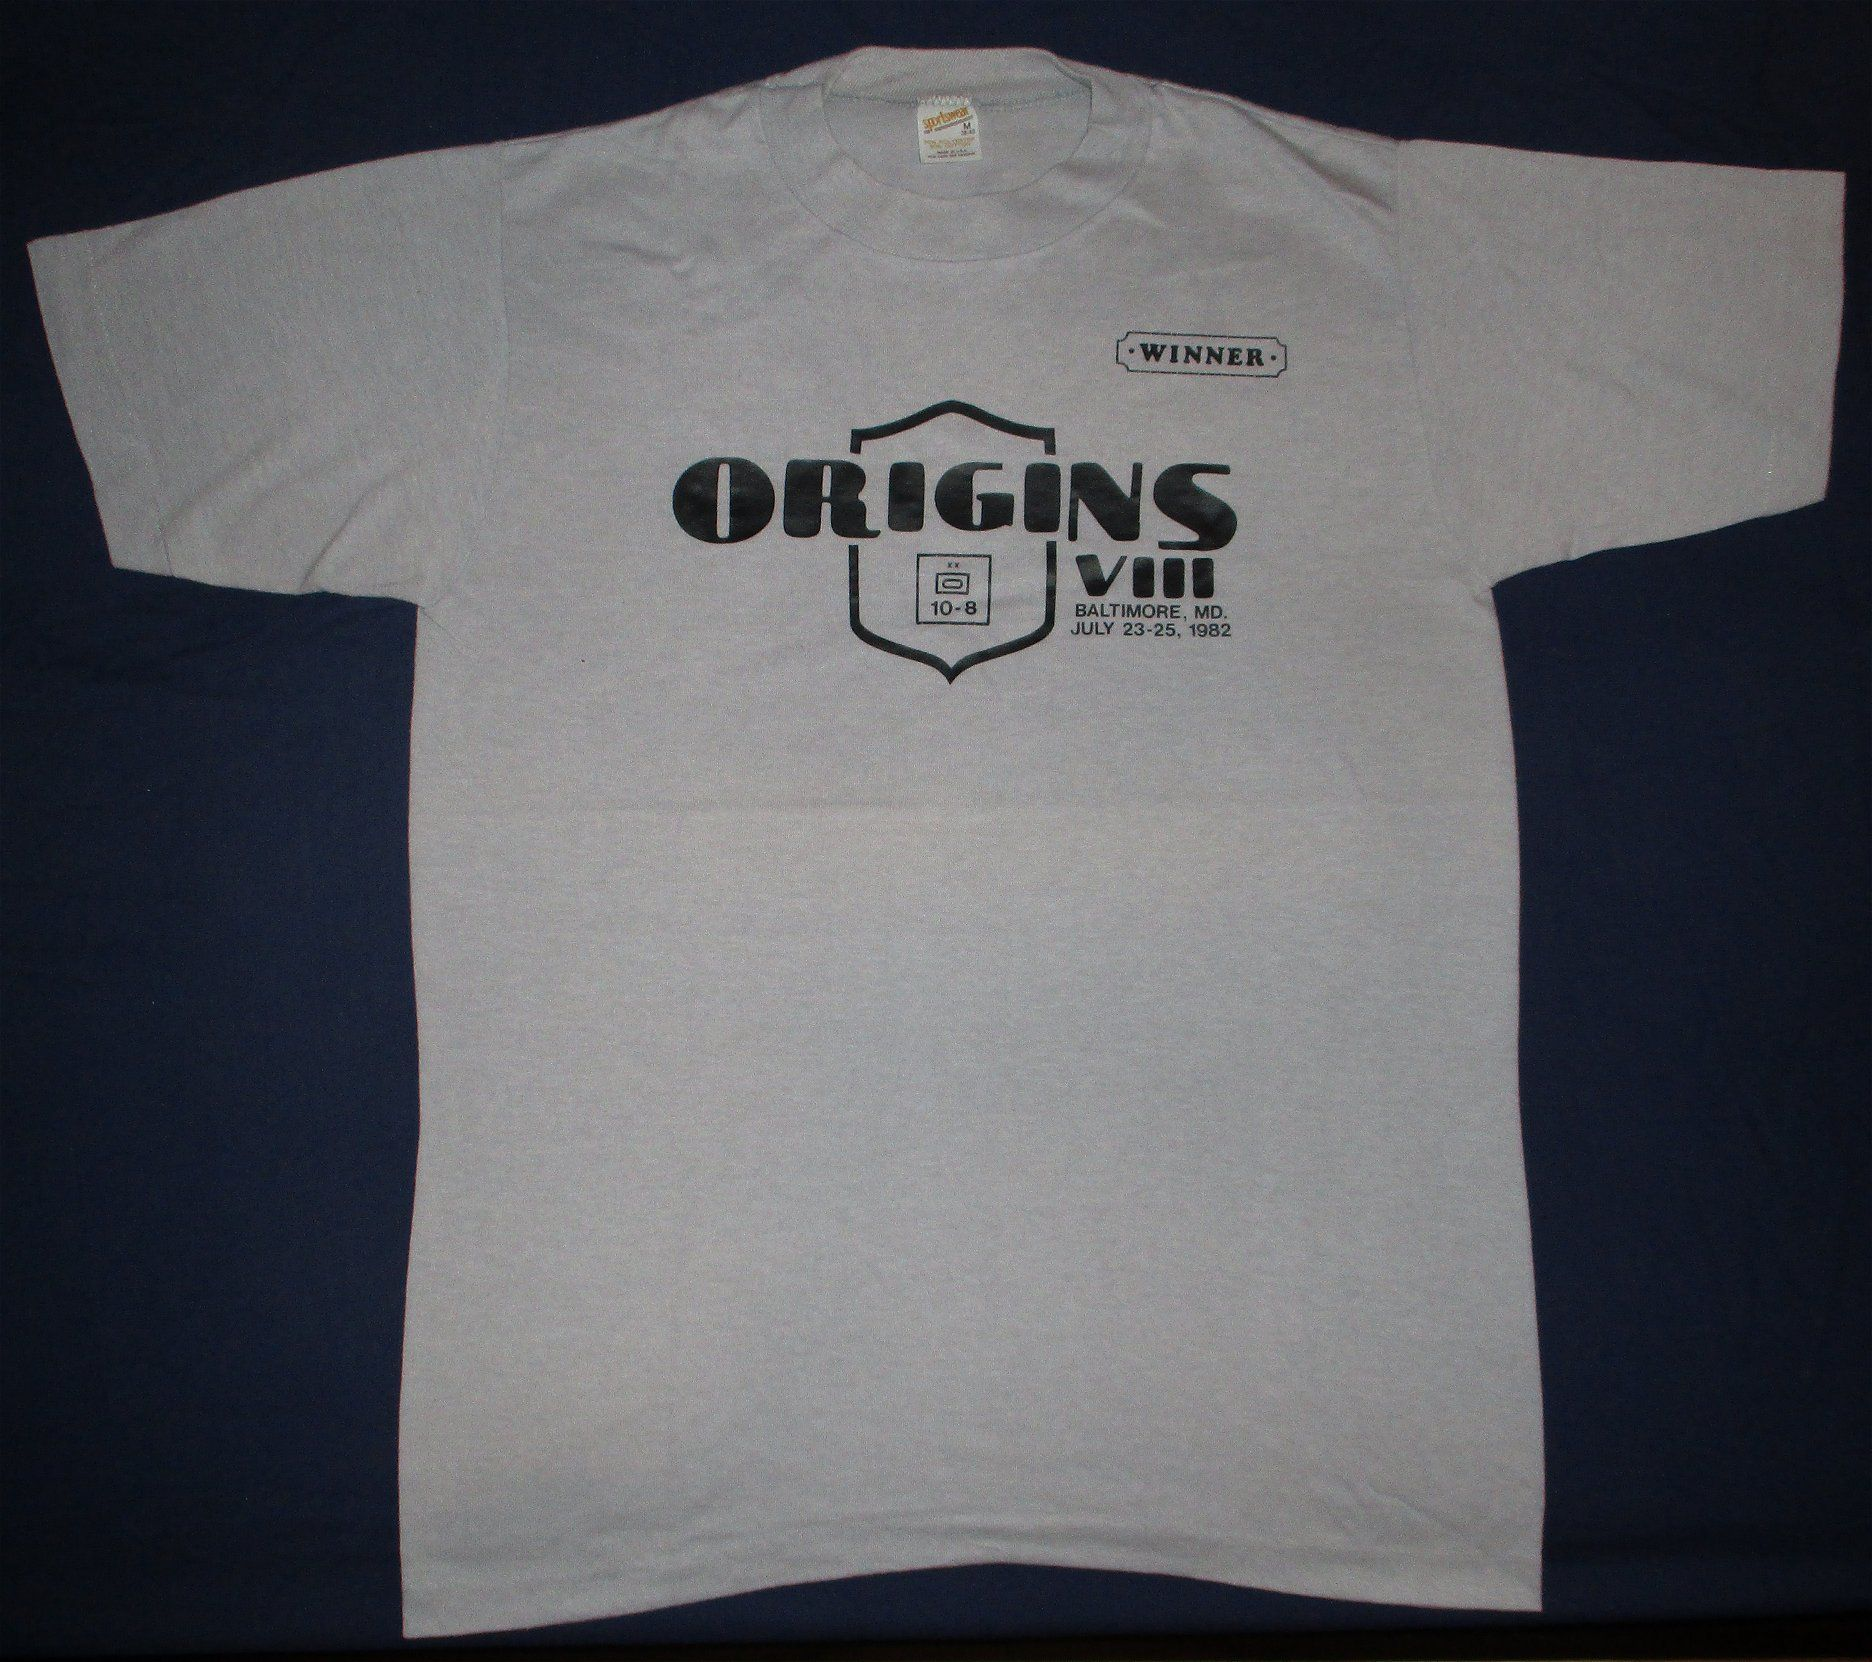 Origins '82 Winner's T-shirt